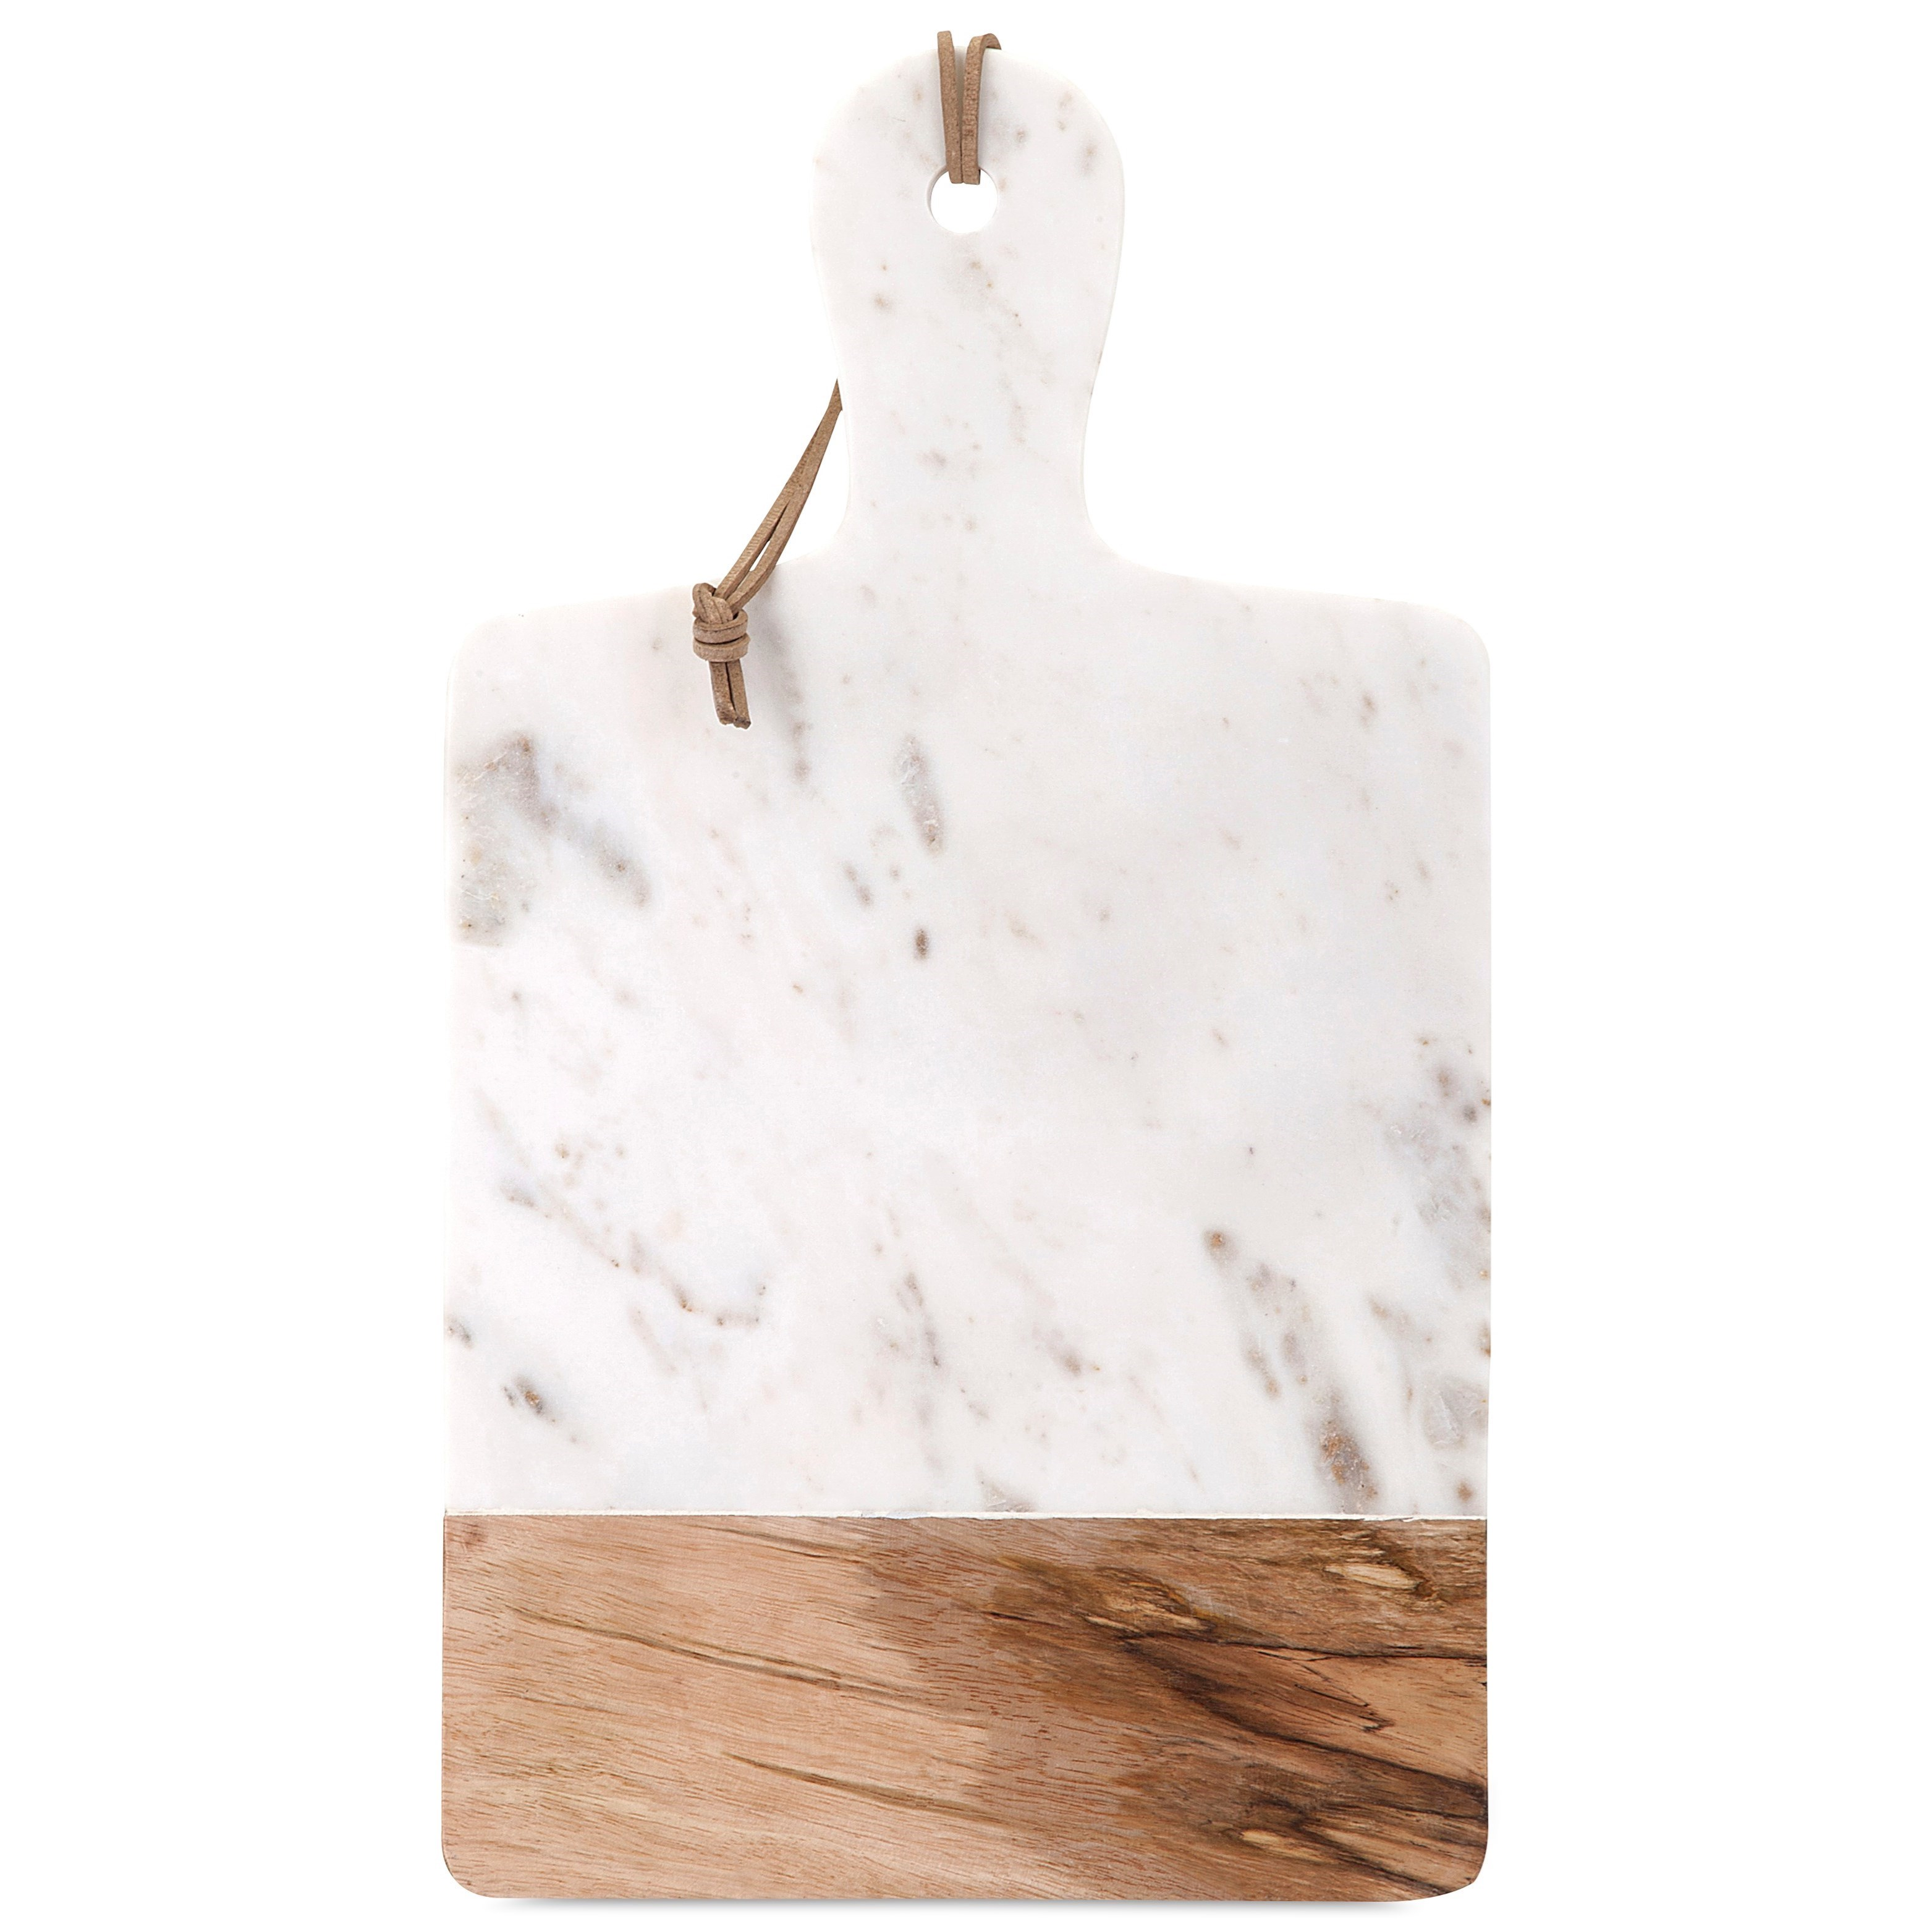 Addy Marble and Wood Cheese Board